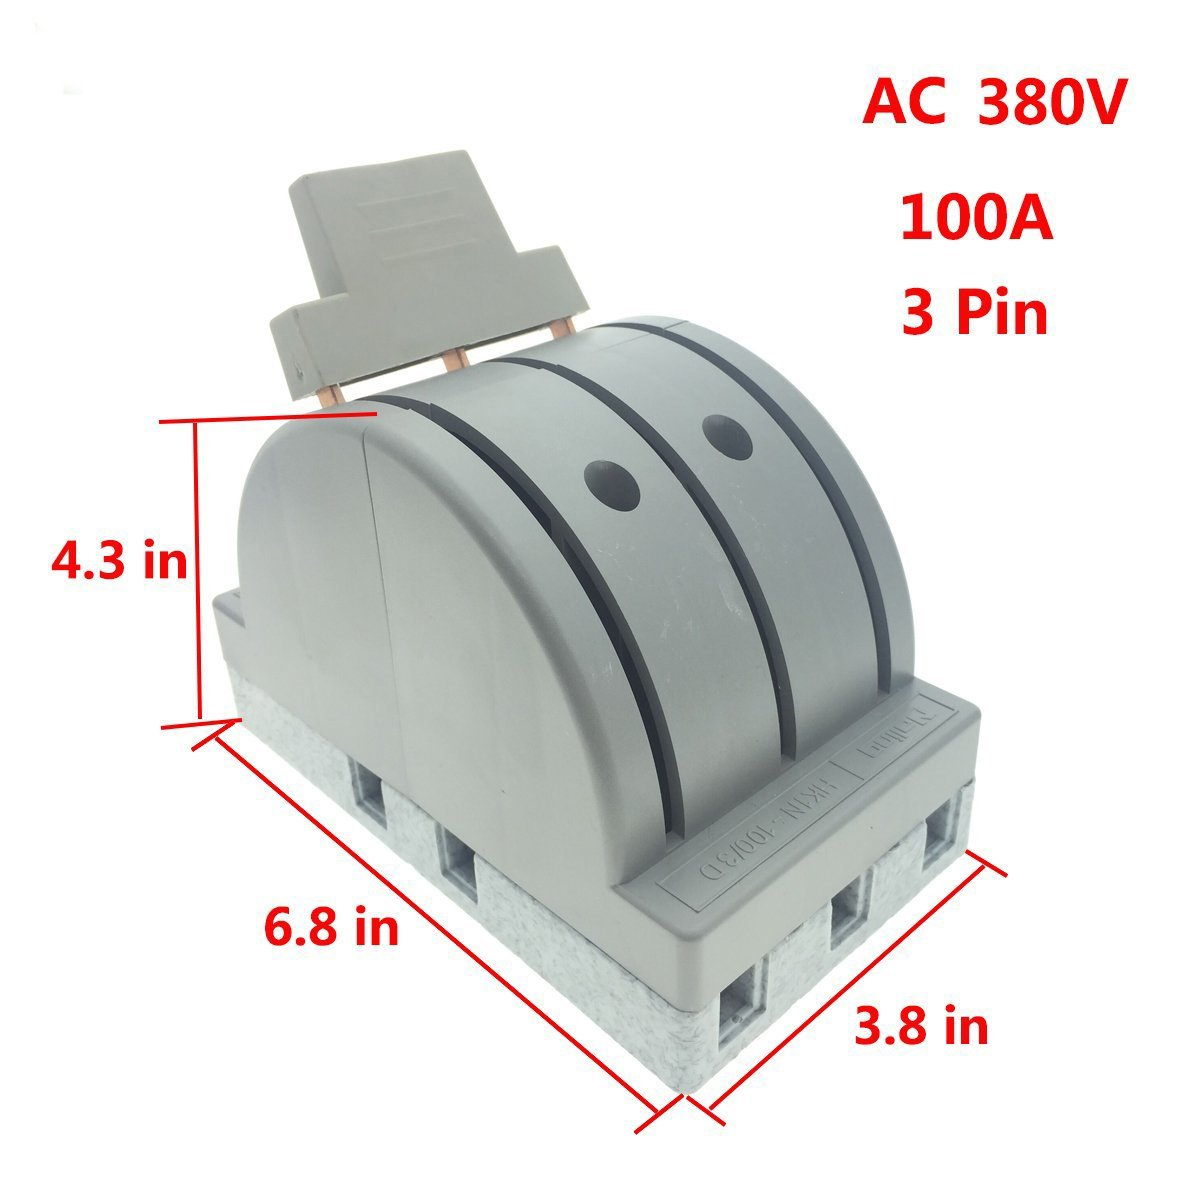 YXQ 380V 100A 3 Pole Double Throw Power Supply Safety Control Knife Switch Gray by YXQ (Image #2)